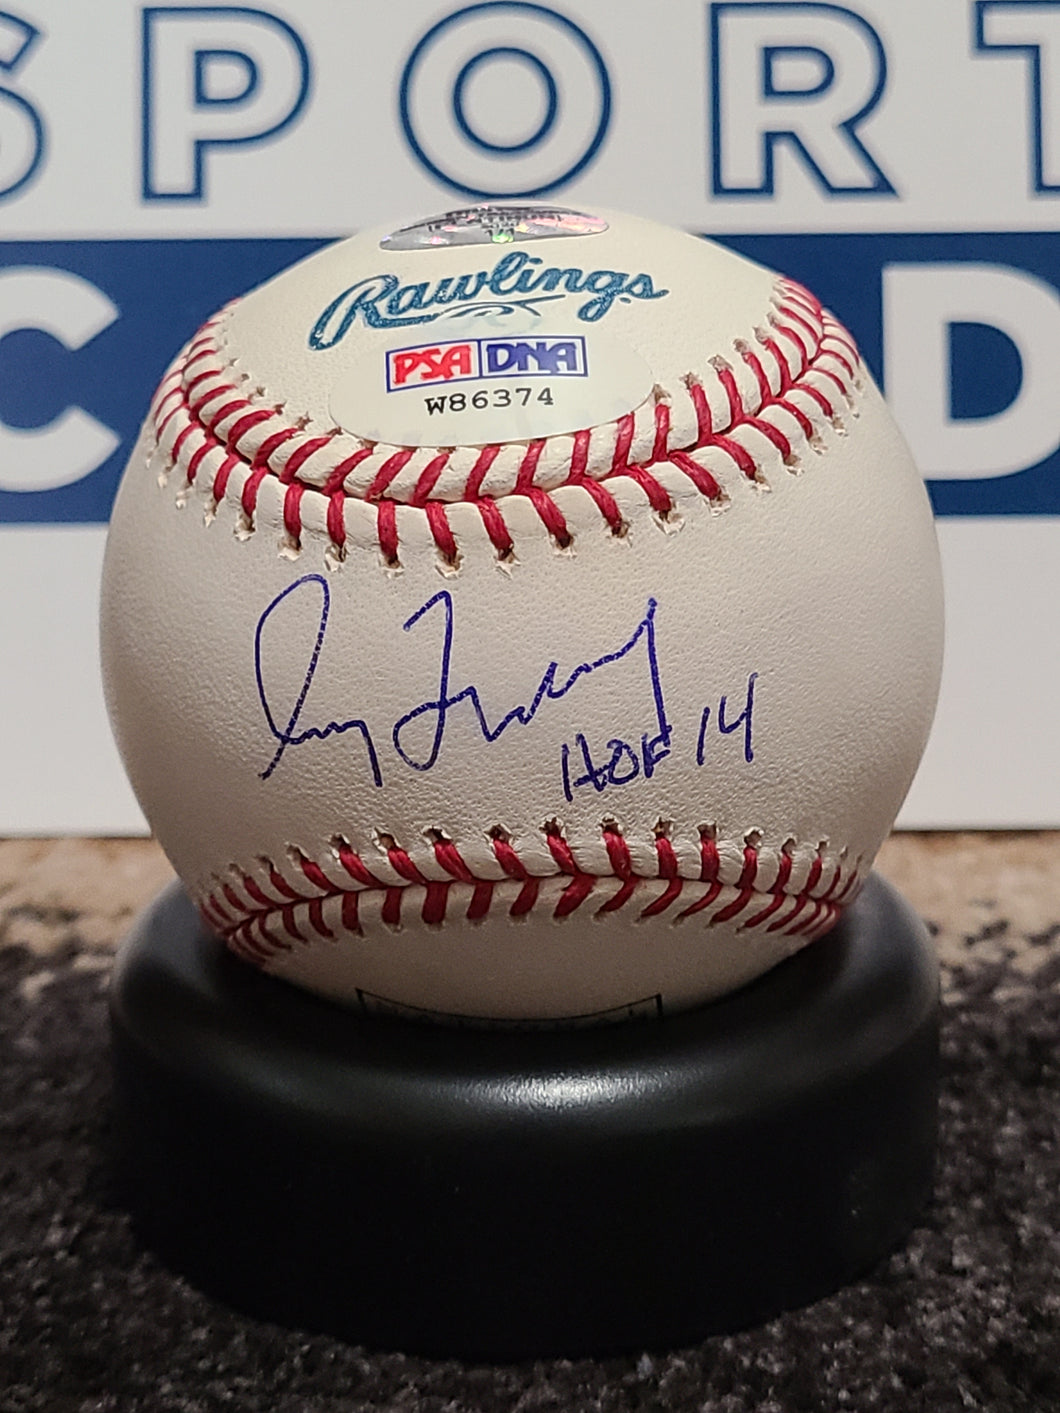 Greg Maddux Signed National HOF Baseball (PSA Cert) Serial #'d 1/1!!